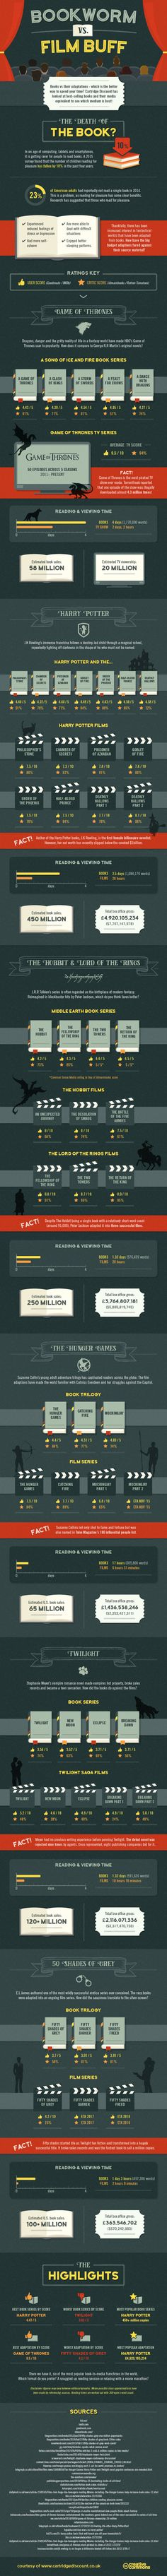 Infographic: The Definitive Breakdown Of Famous Books Vs. Their Film Adaptations Popular Book Series, Popular Books, Library Science, Modern Books, Famous Books, What To Read, Book Lists, Book Worms, Book Lovers